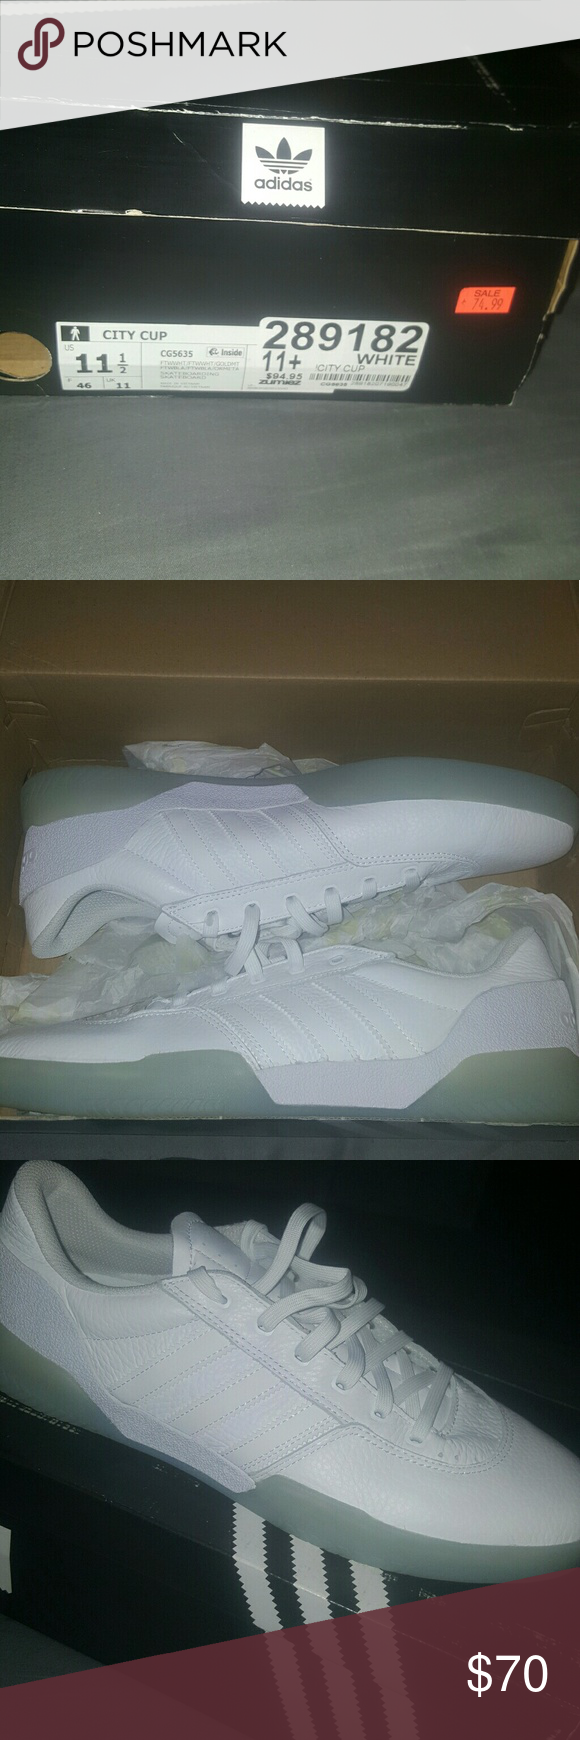 81fc407aa50 ADIDAS City Cup White and White Ice shoes 🔥 Never been used